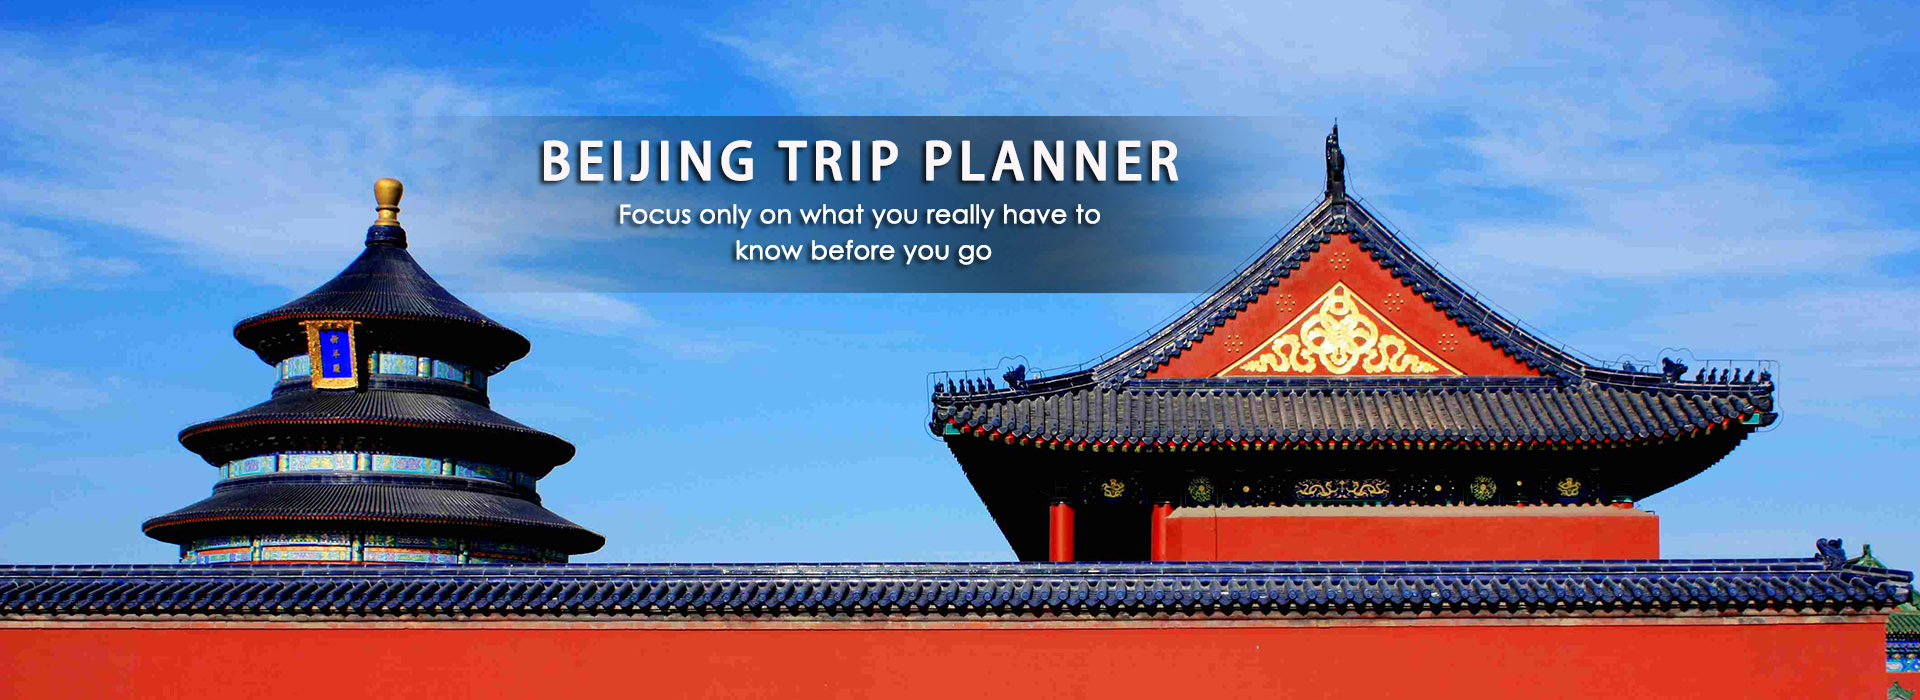 How to Plan a Beijing Trip 2019